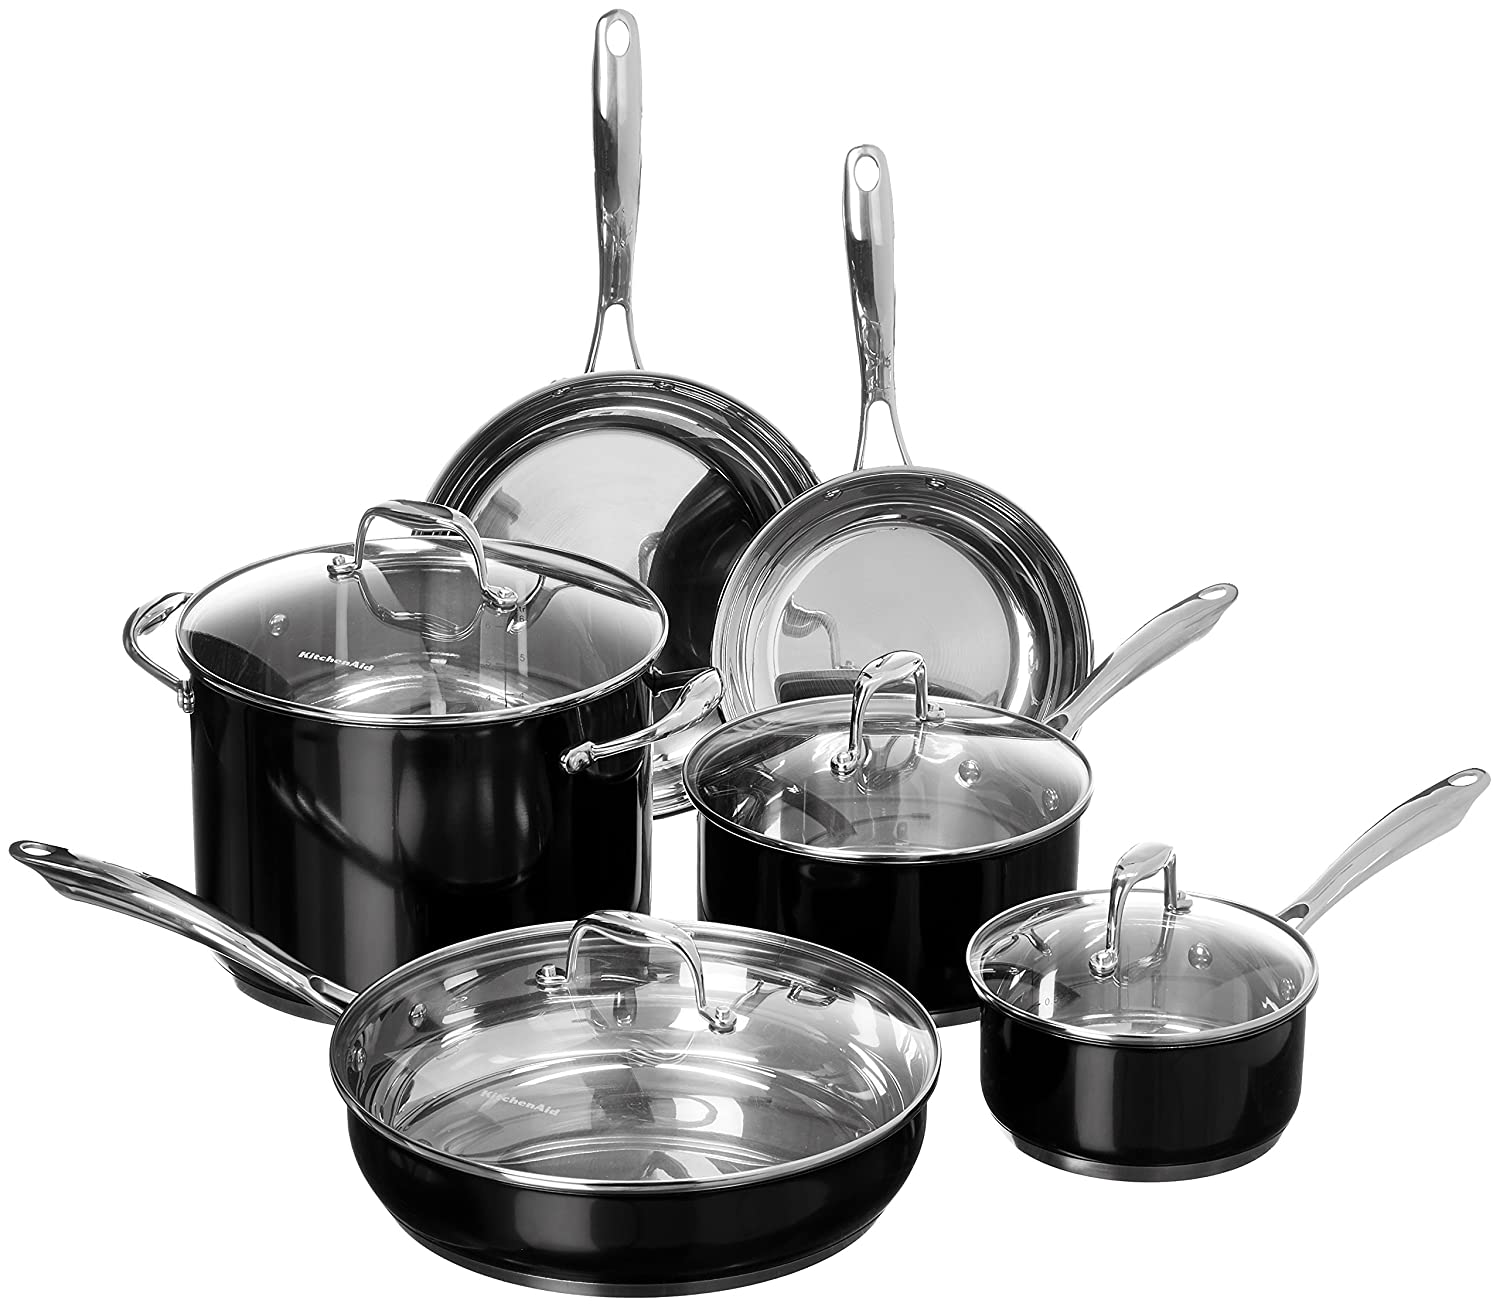 Amazon.com: KitchenAid KCSS10OB Stainless Steel 10-Piece Cookware ...